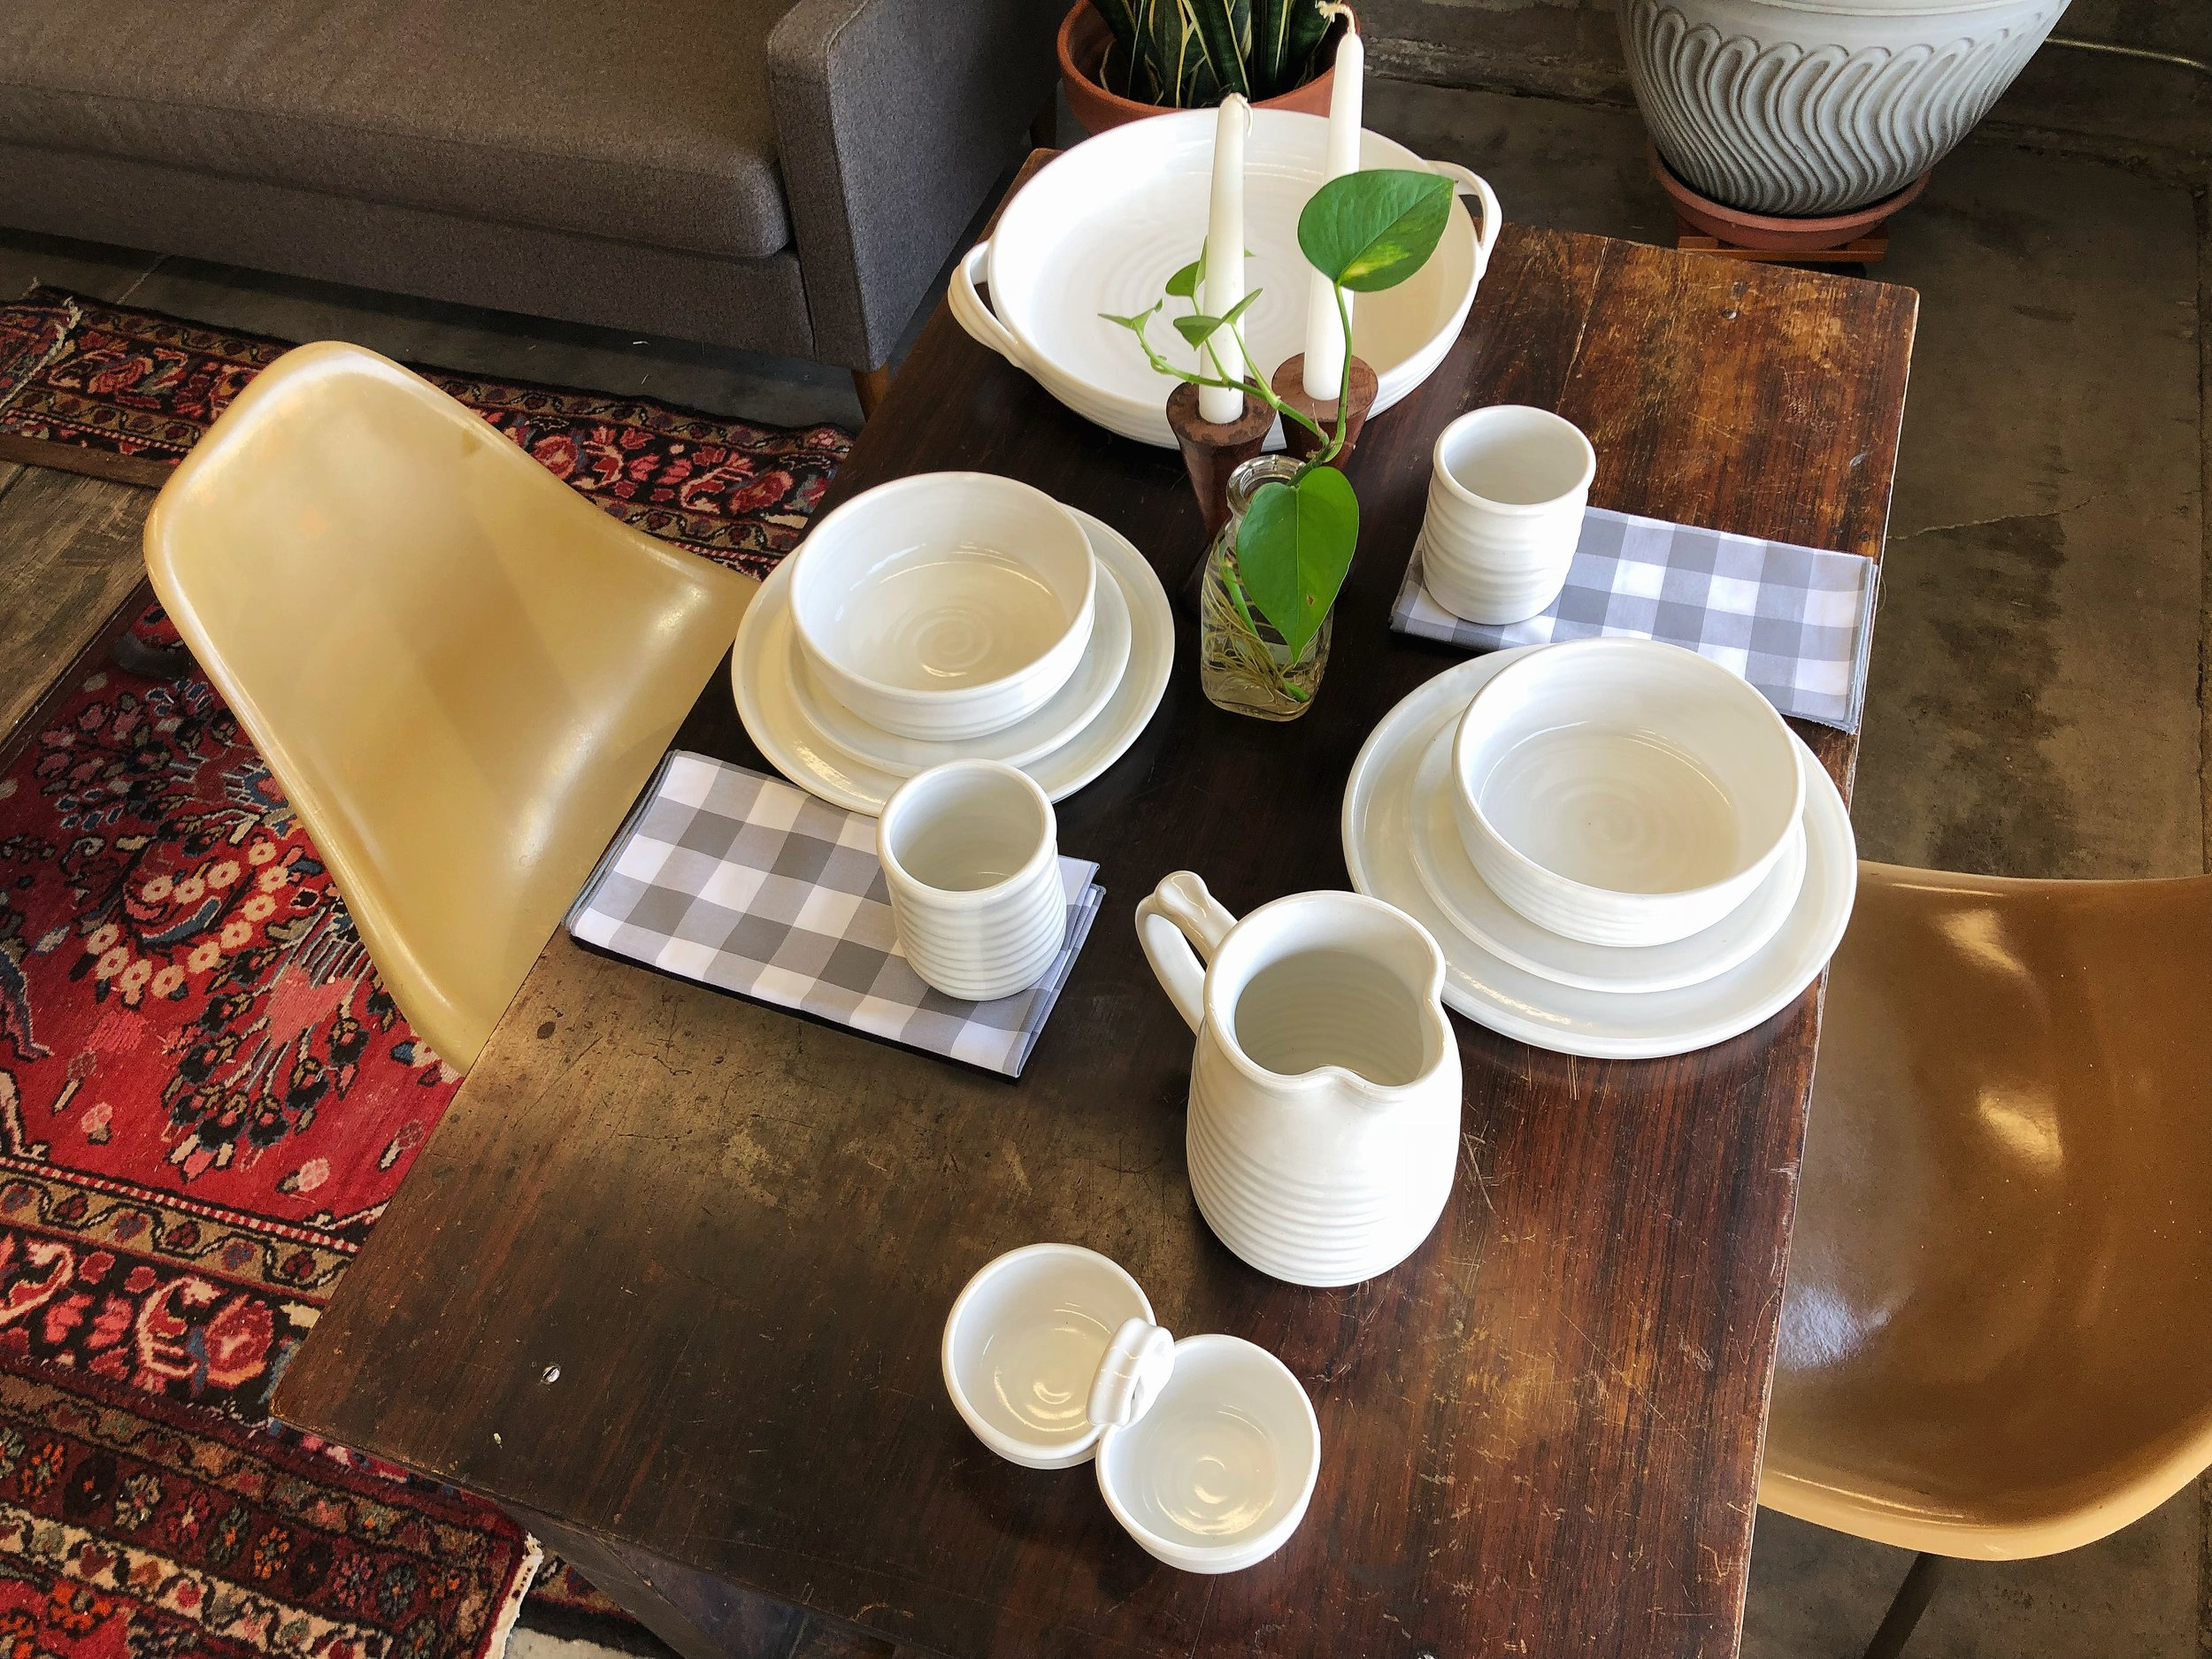 Our pal Kris at  Foxy Pots Pottery  created a new line of dinnerware for local business  Timber and Beam . We captured a few photos of it so we can look at it anytime we want like the creepers we are.